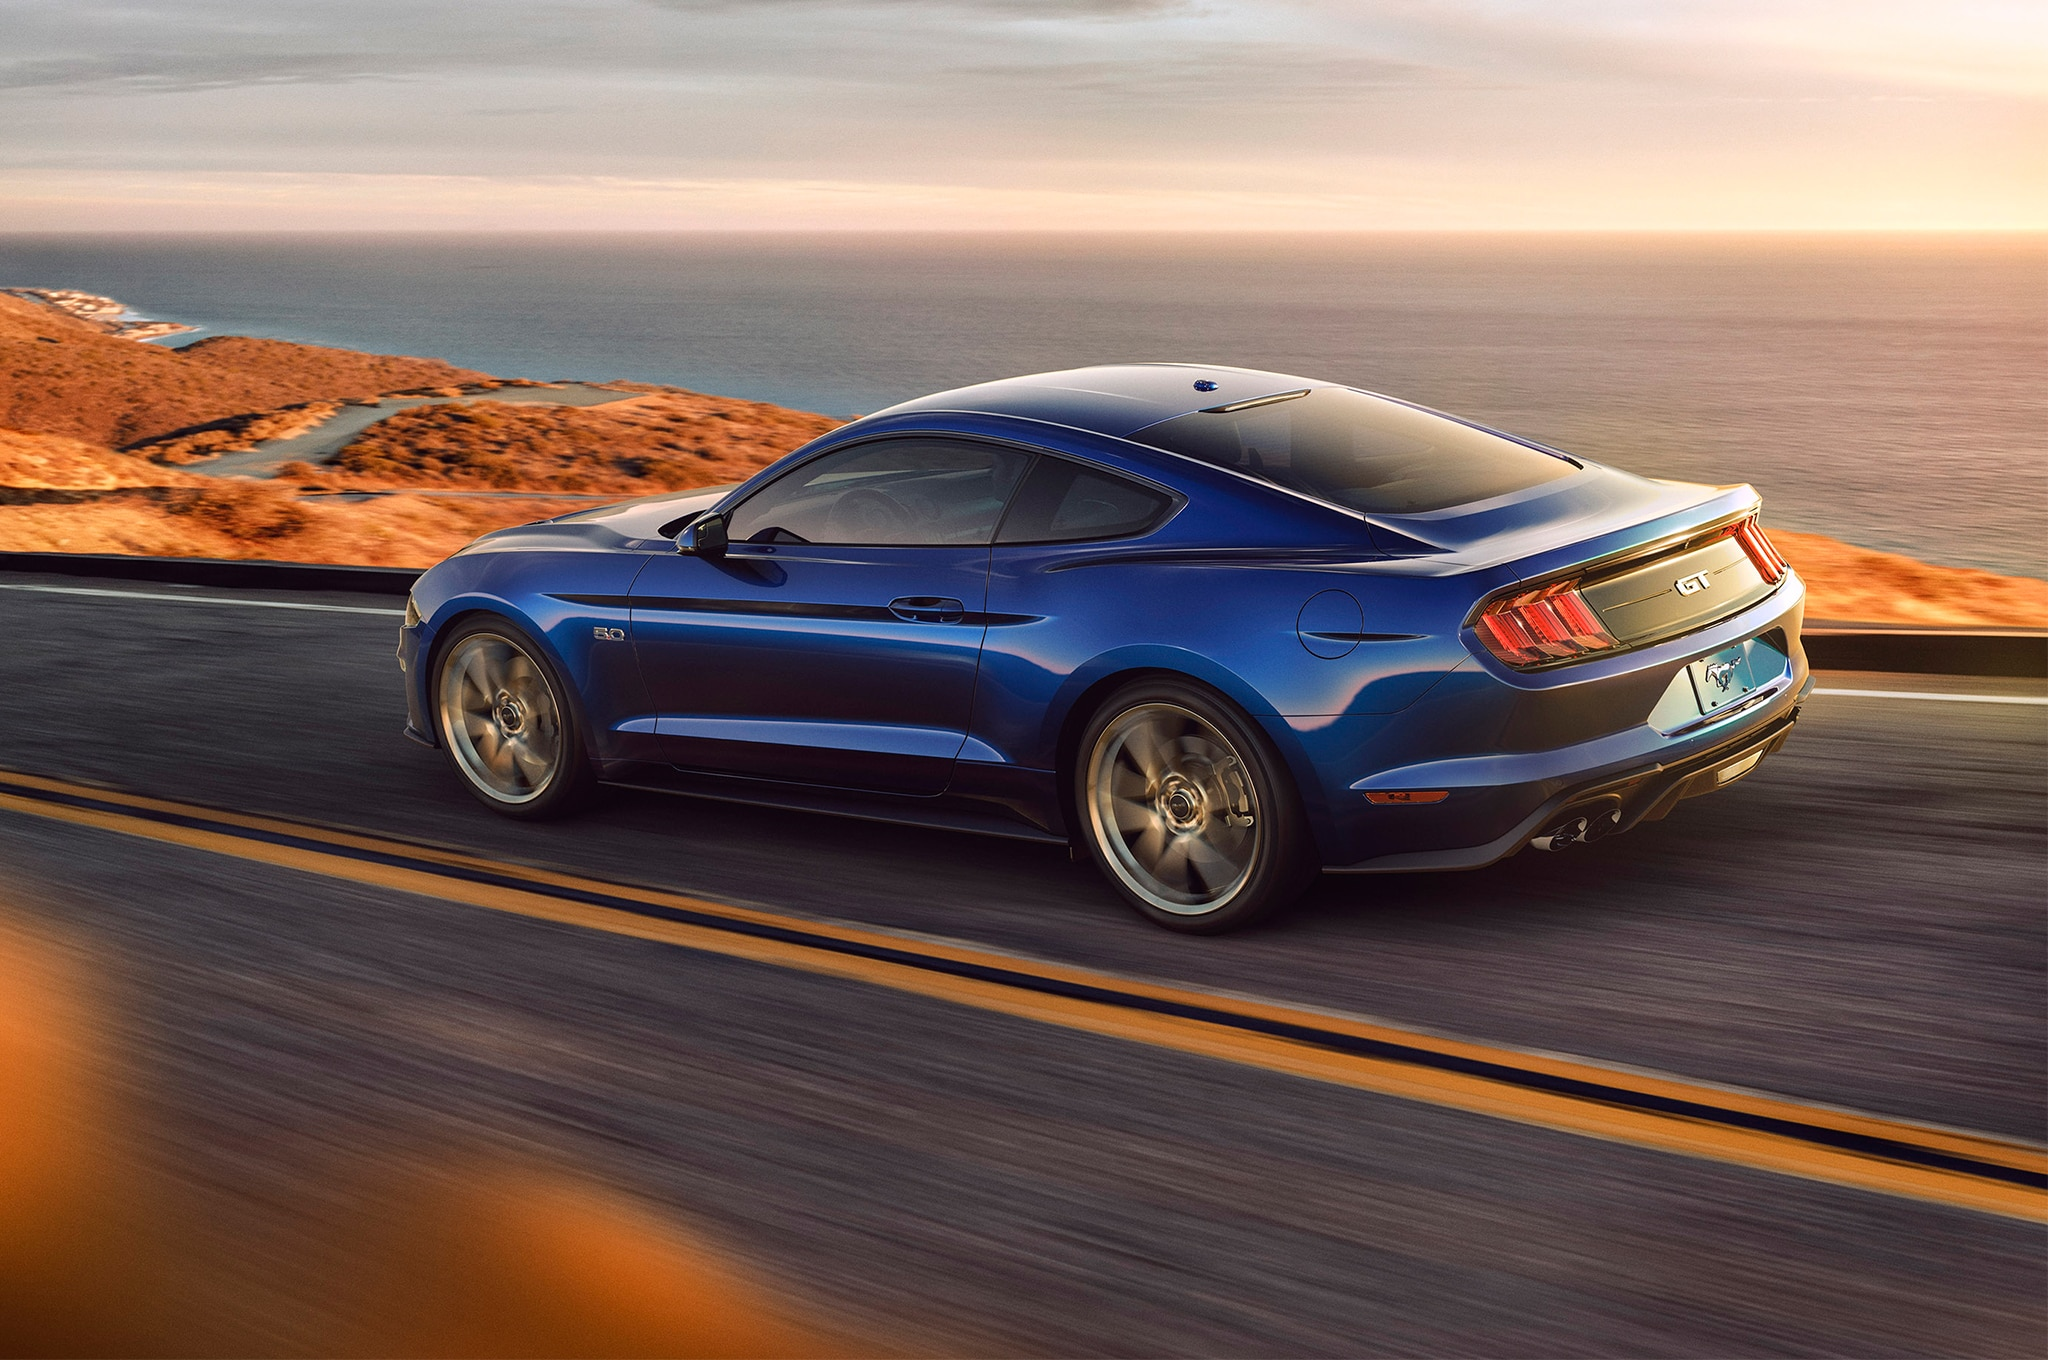 Protect your HOA status: 2018 Ford Mustang GT gets 'quiet' mode